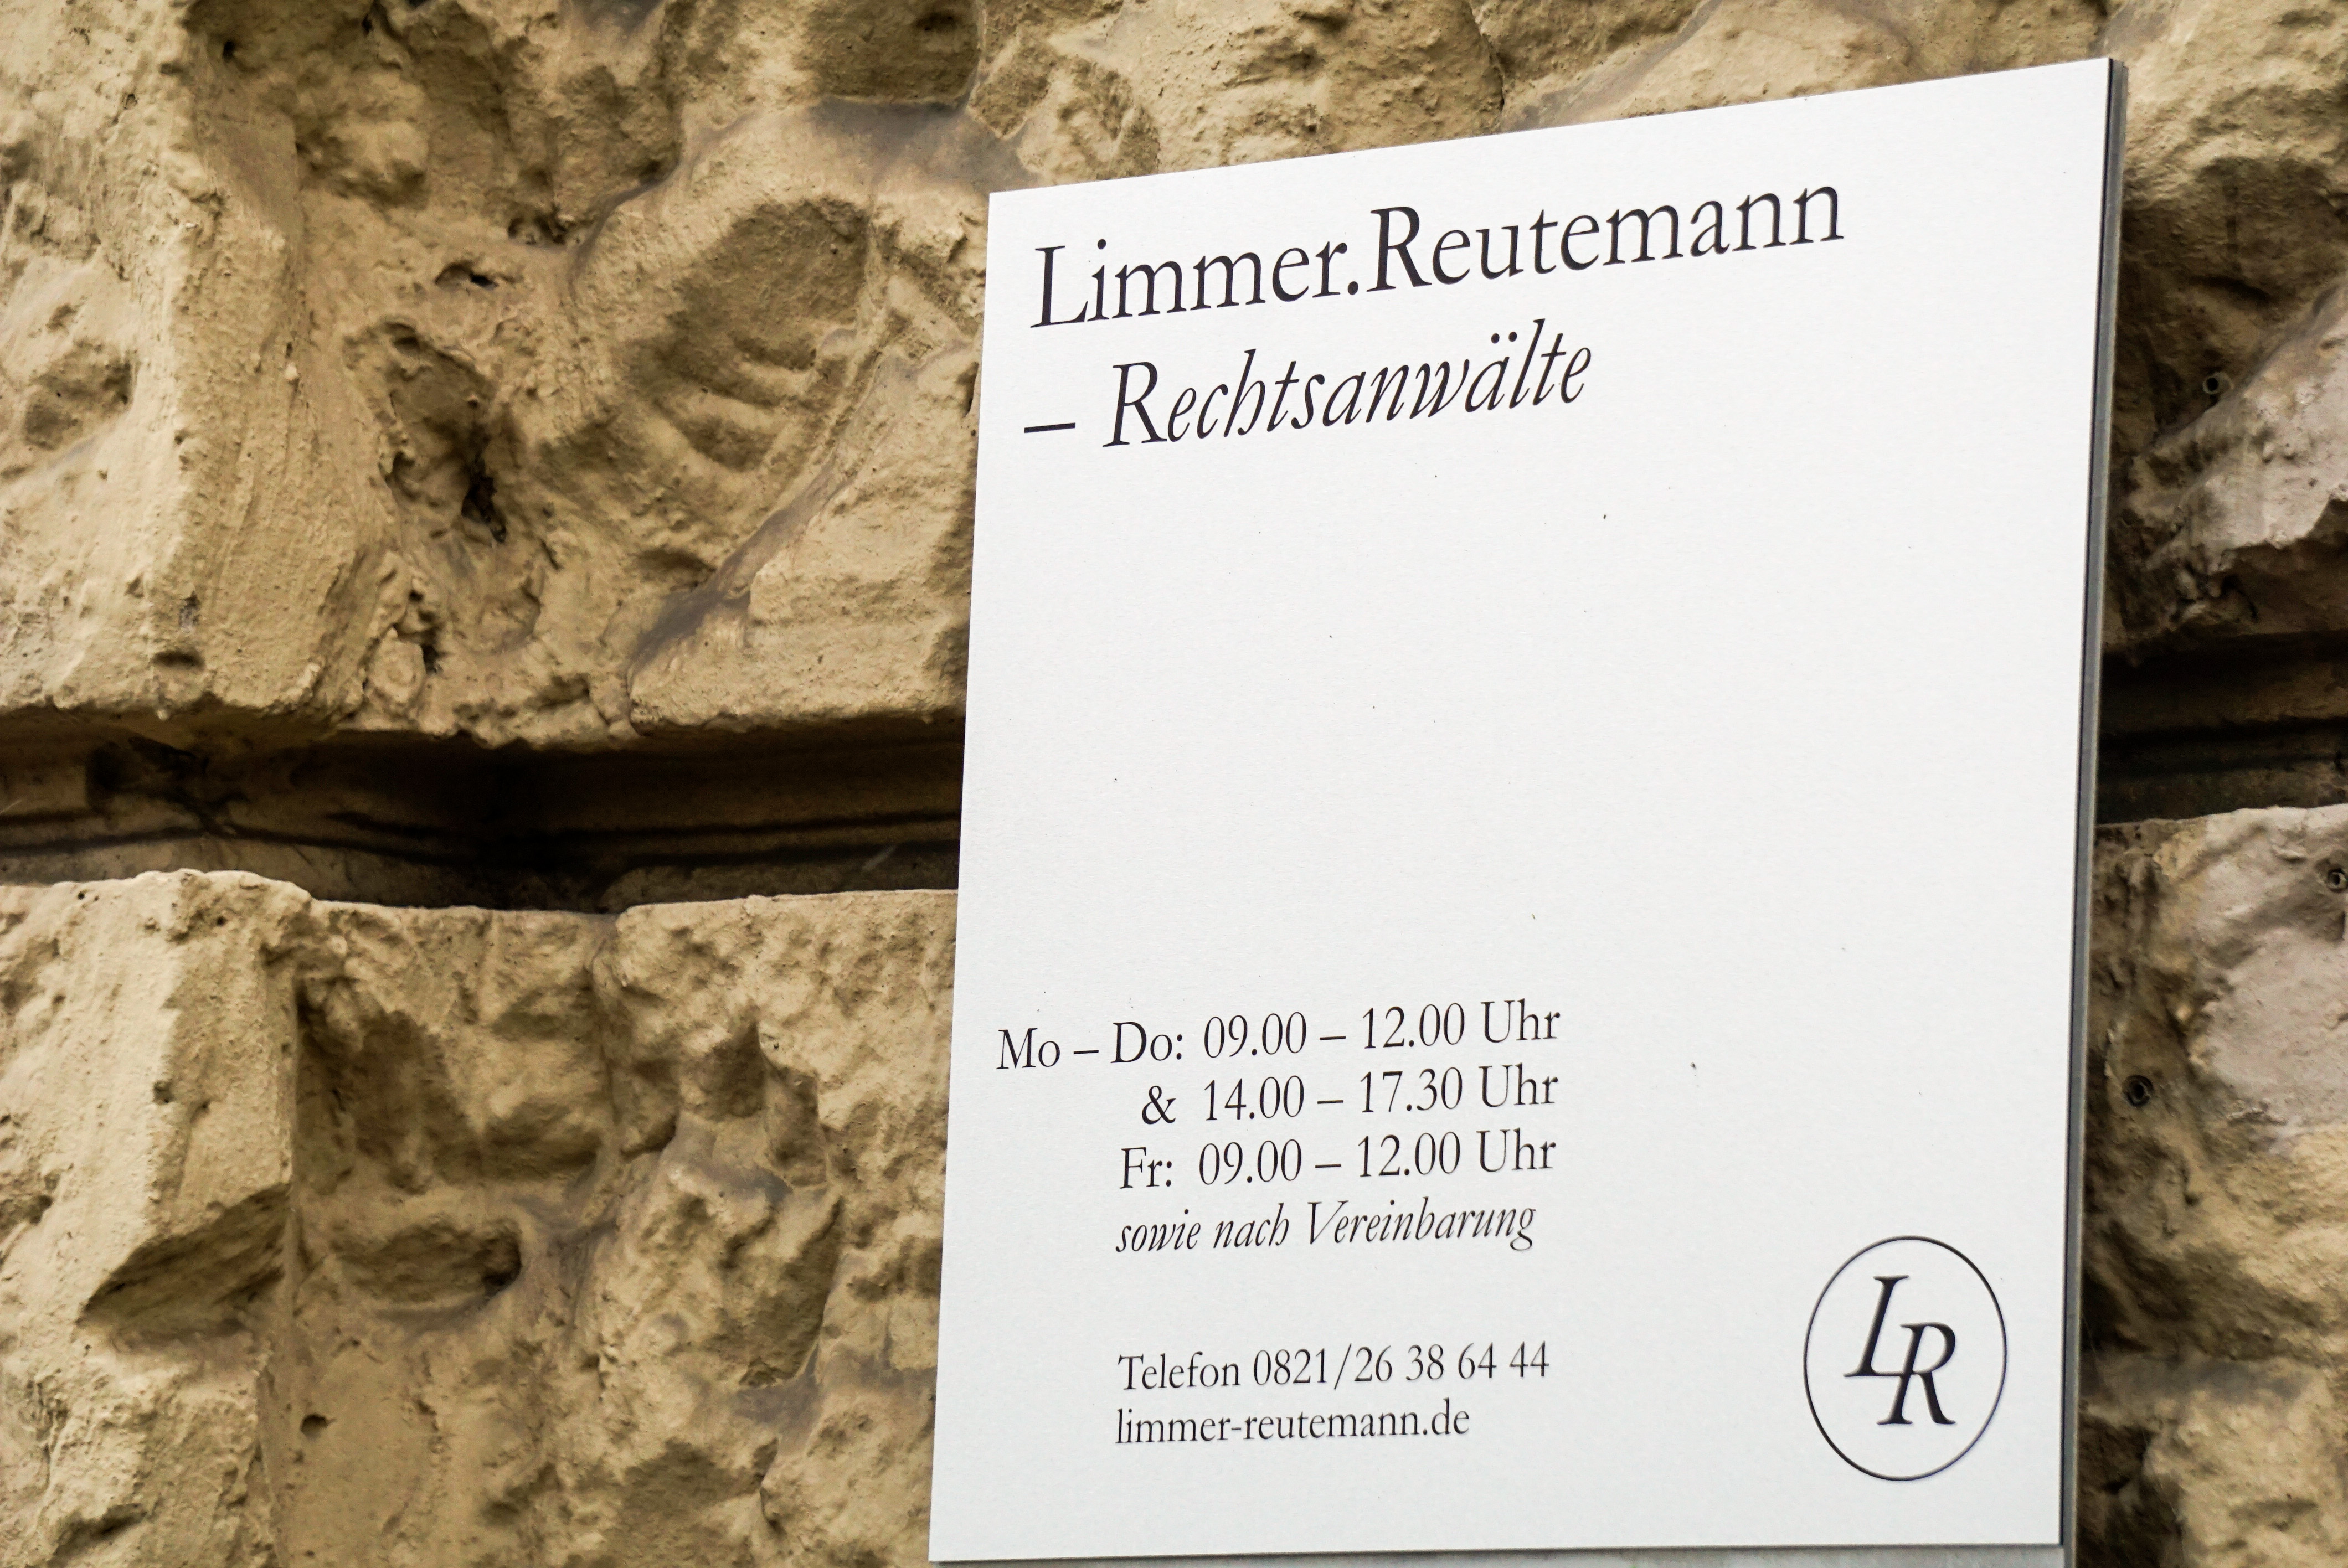 Limmer.Reutemann – Rechtsanwälte | Augsburg | Zivilrecht, Strafrecht, Verkehrsrecht & Arbeitsrecht